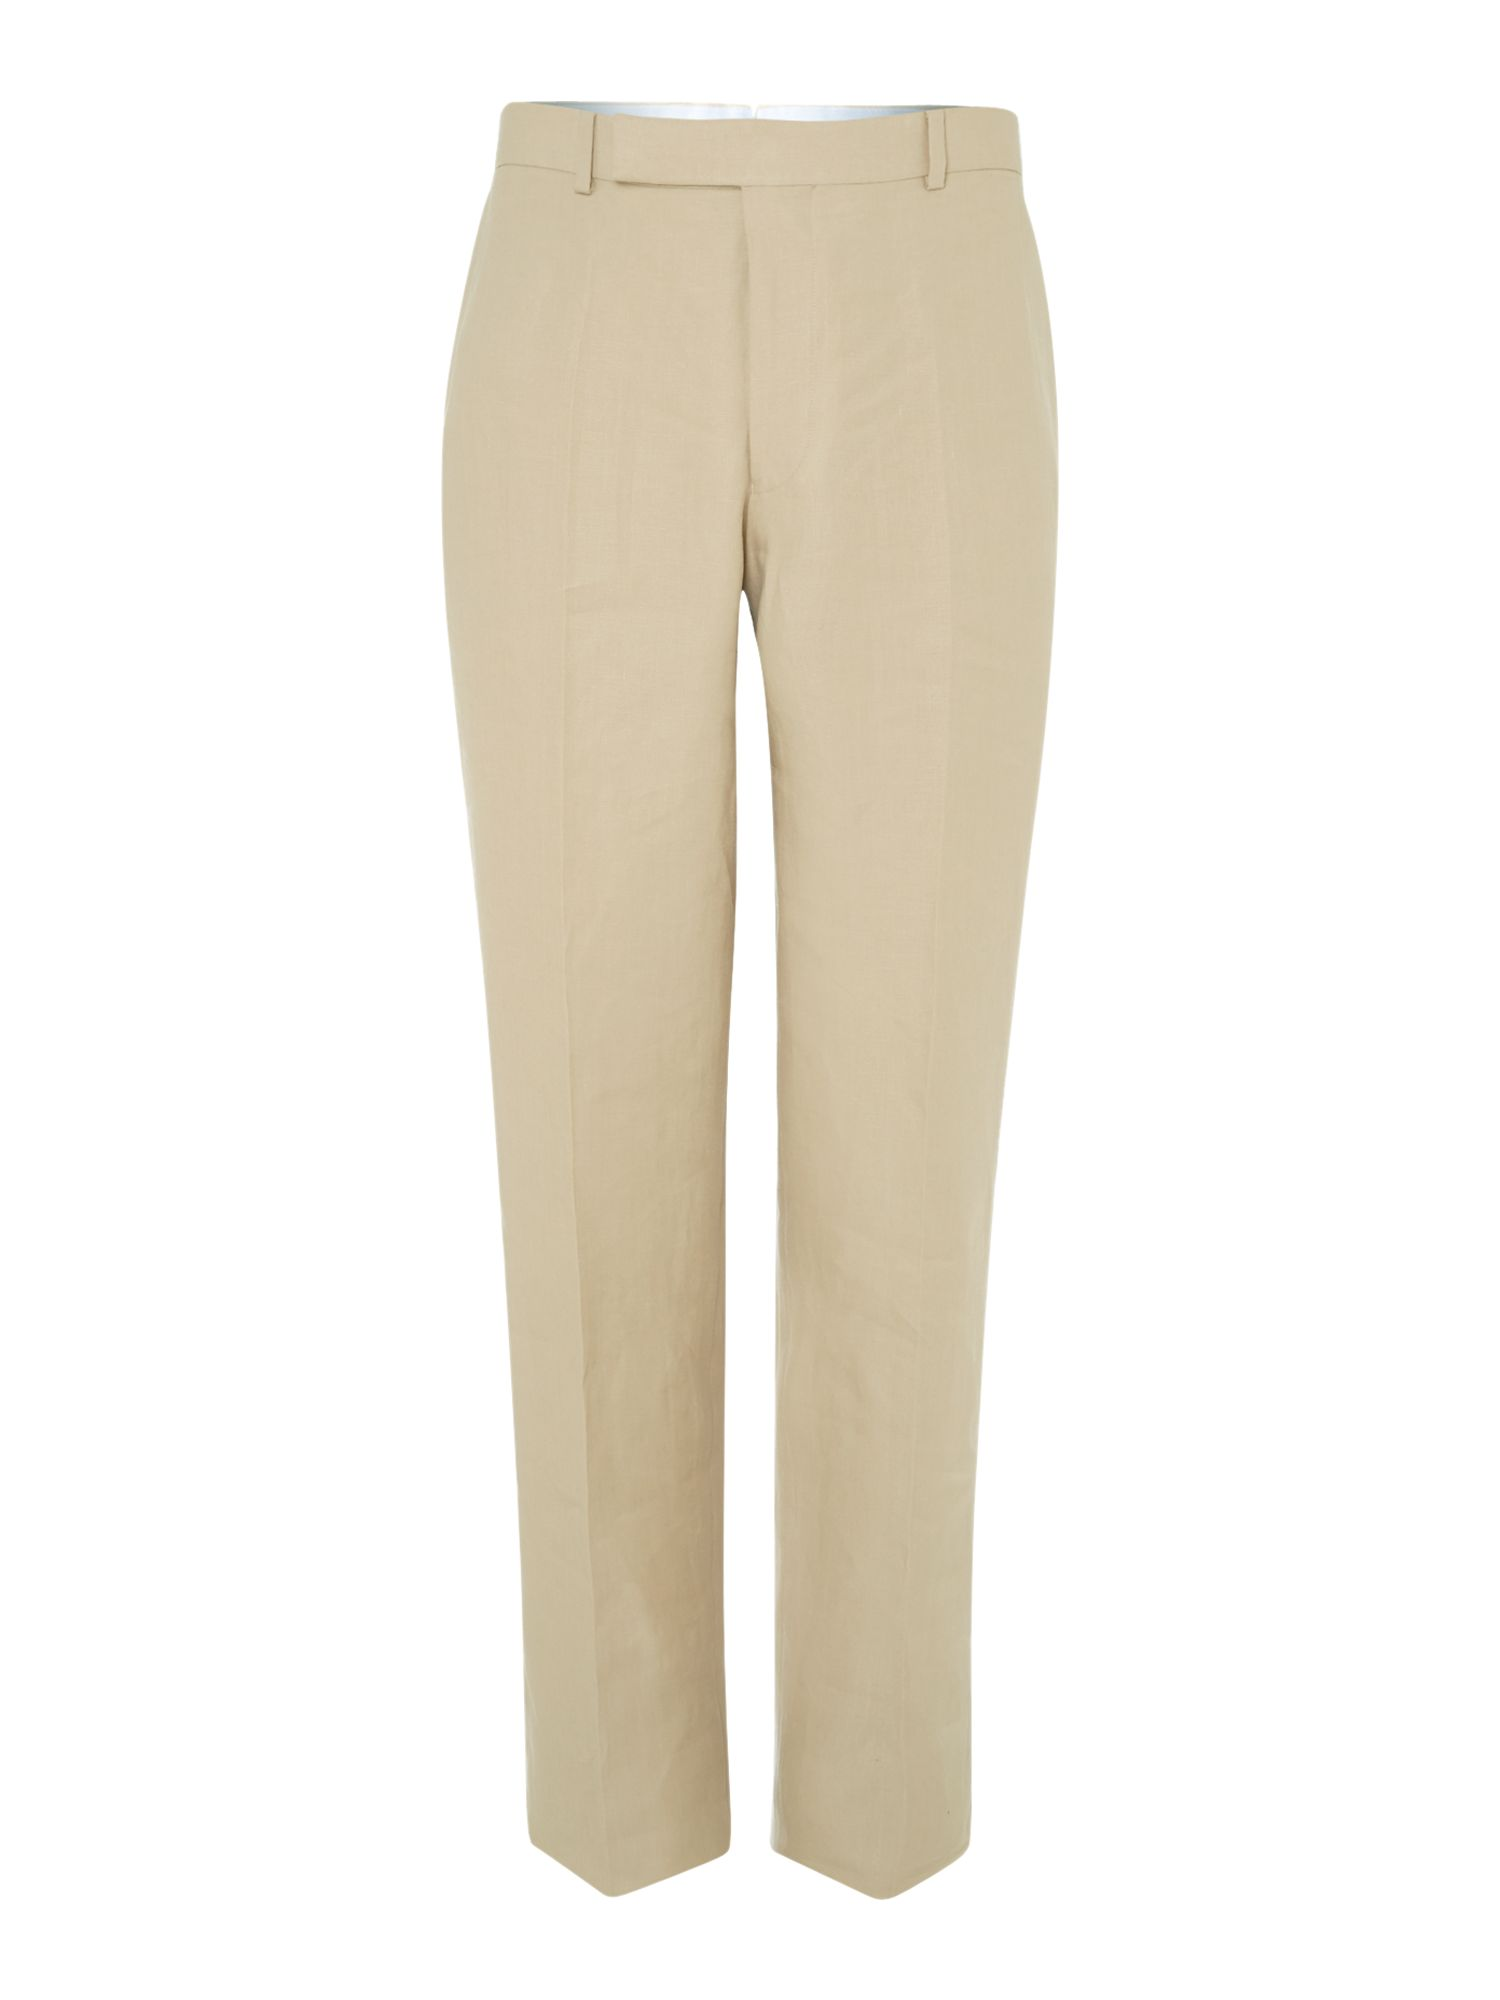 Classic formal suit trousers